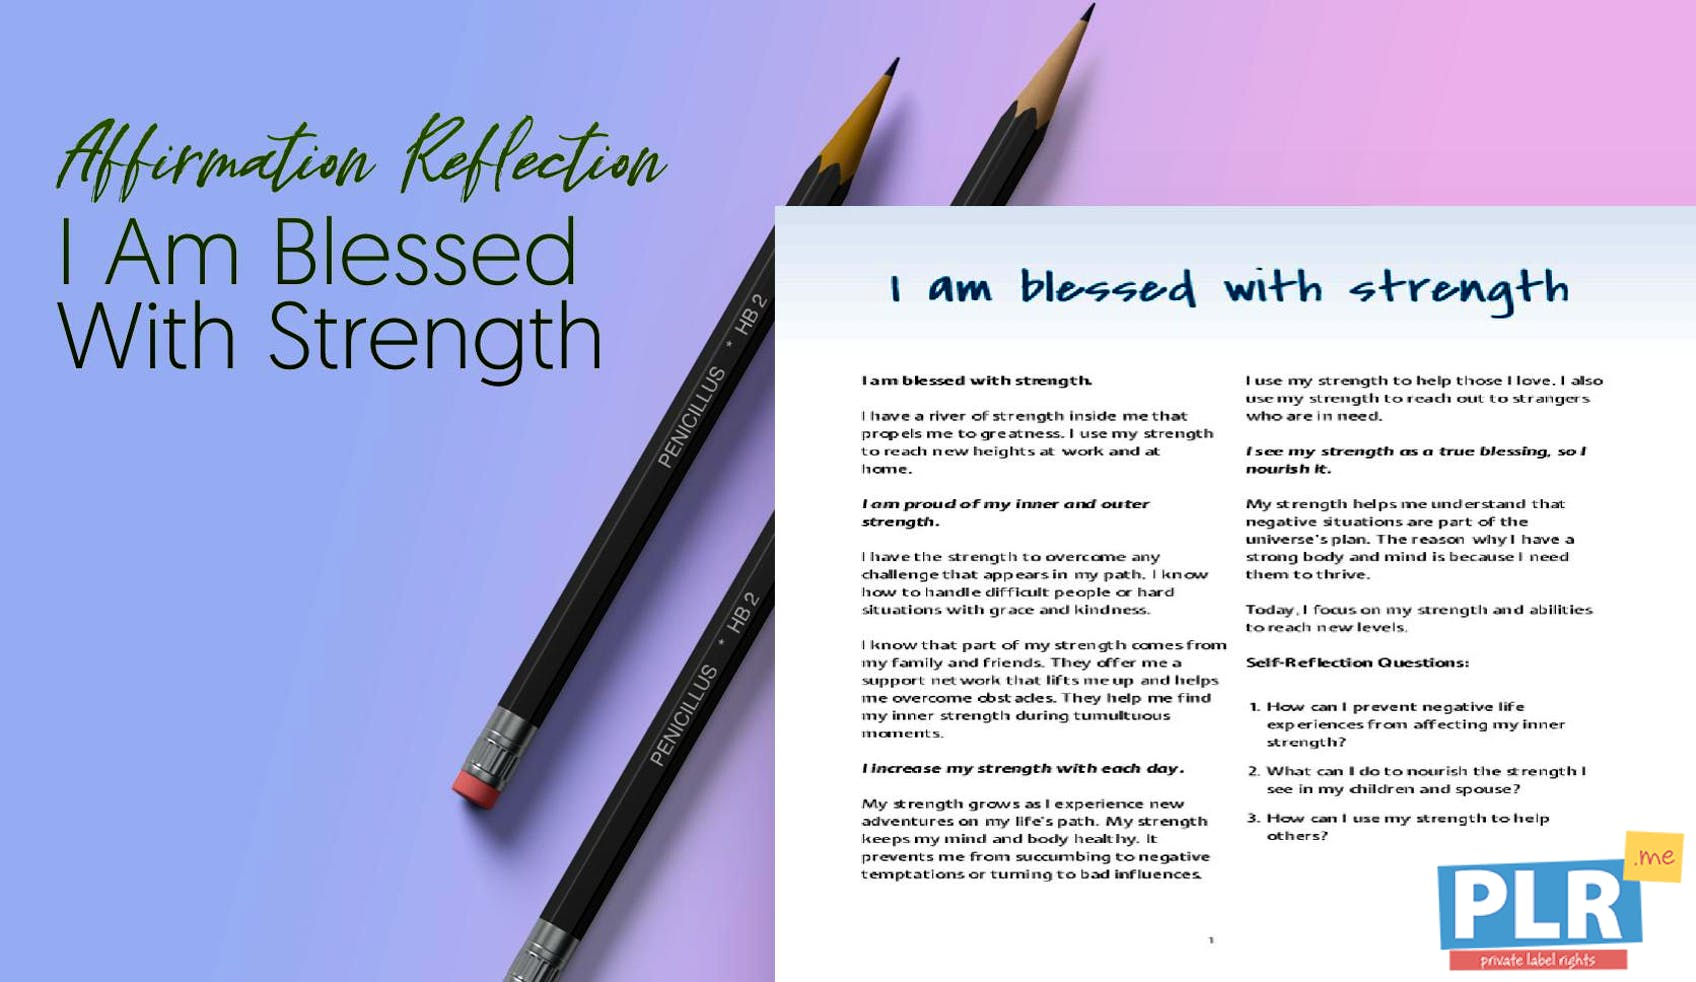 I Am Blessed With Strength